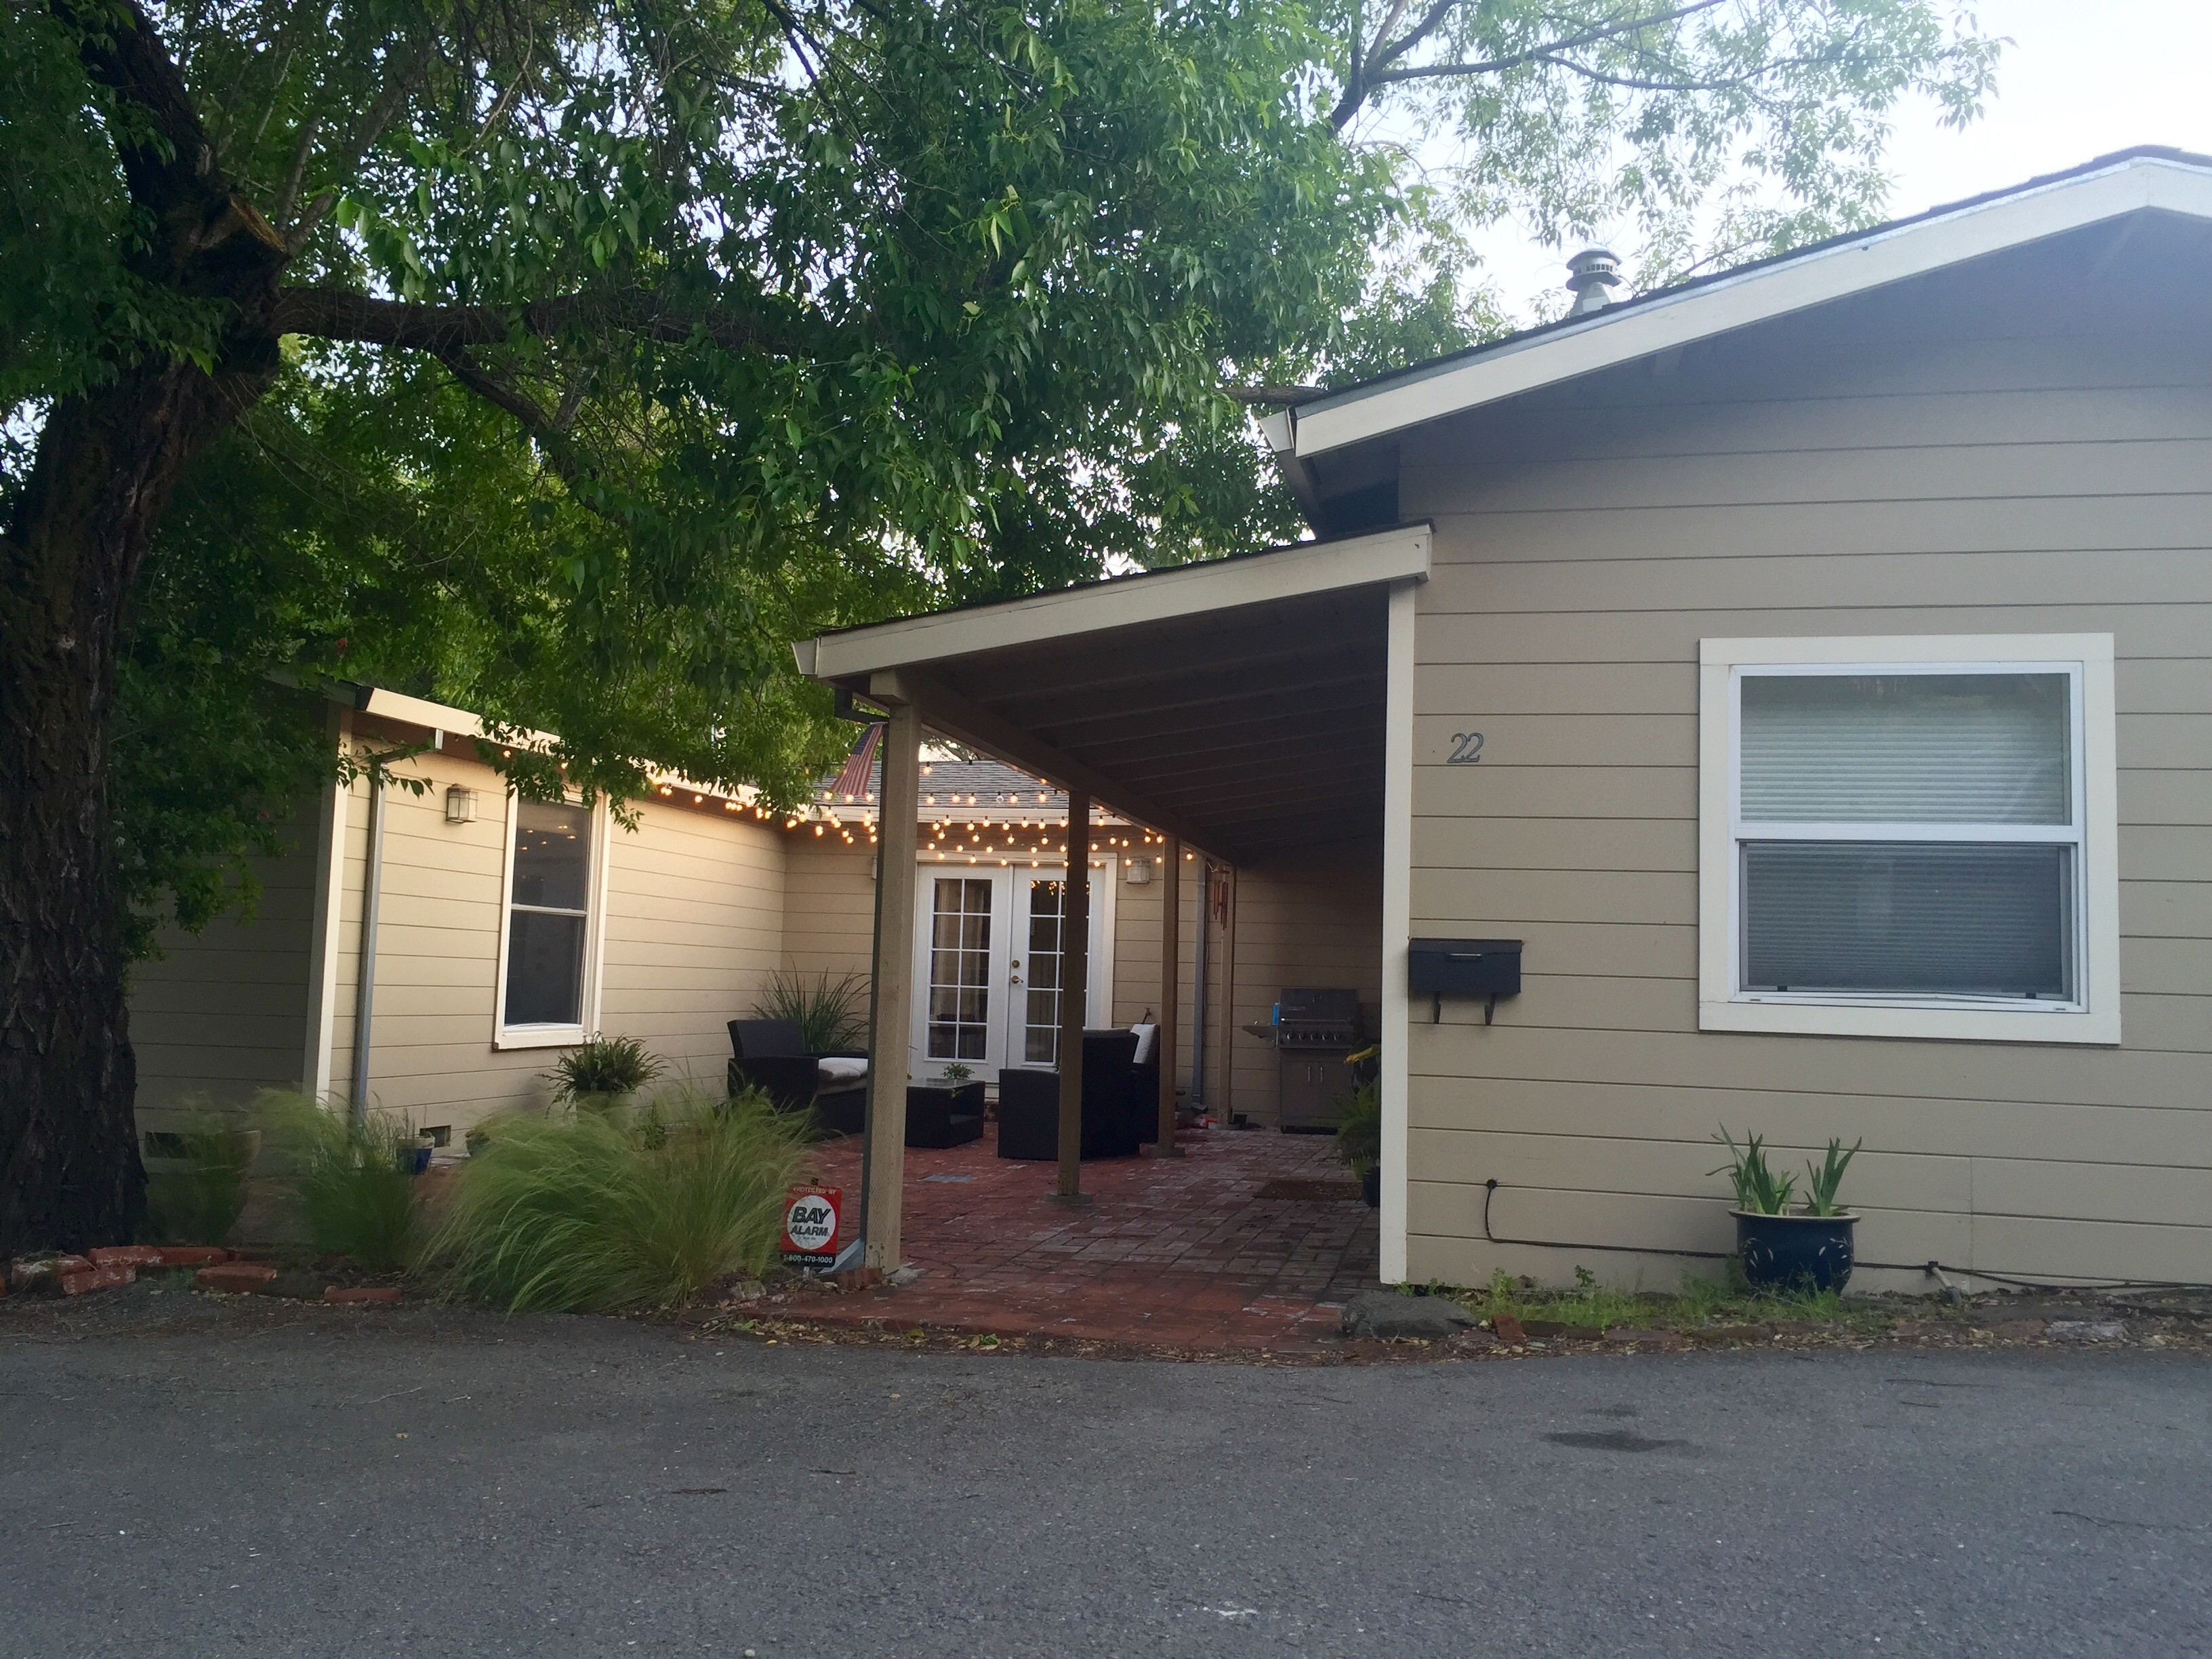 5th Ave K St San Rafael Ca 94901 3 Bedroom House For Rent For 1 300 Month Zumper